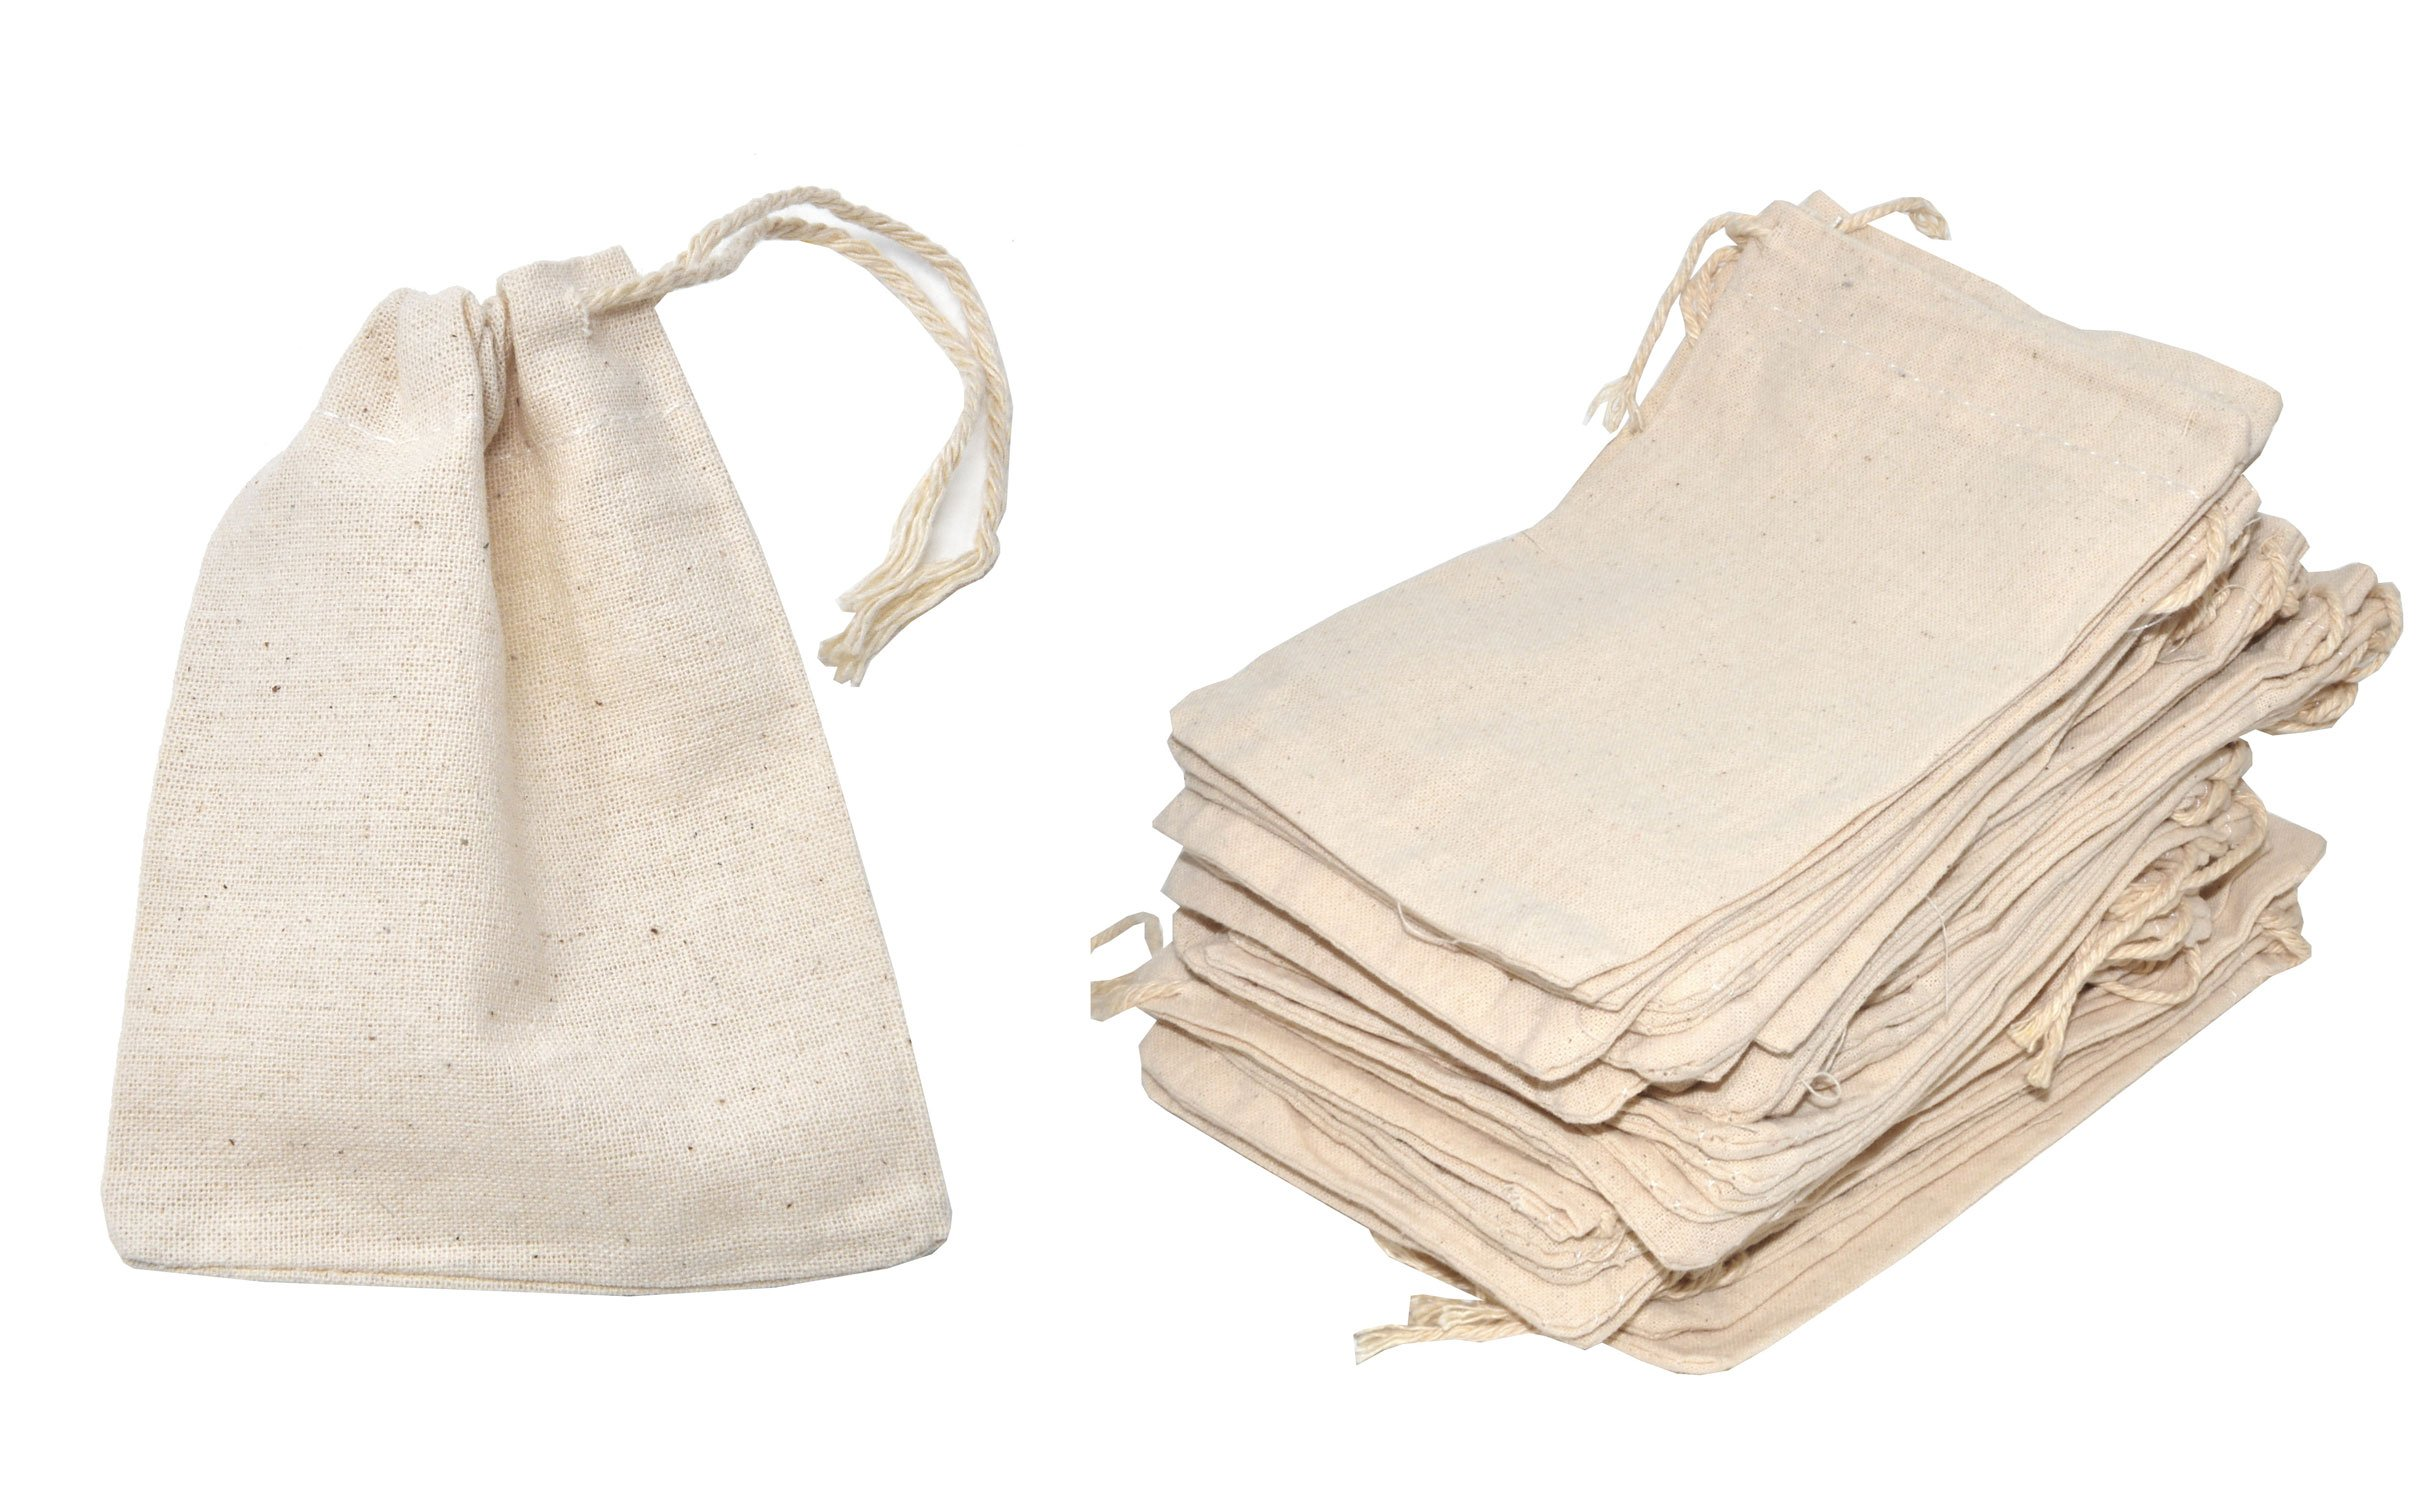 Mandala Crafts Bulk Unbleached Fabric Cloth Cotton Muslin Sachet Bags with Drawstring for Soap Spice Tea Favor Gift (3 X 4 inches 100 Count, Ivory)